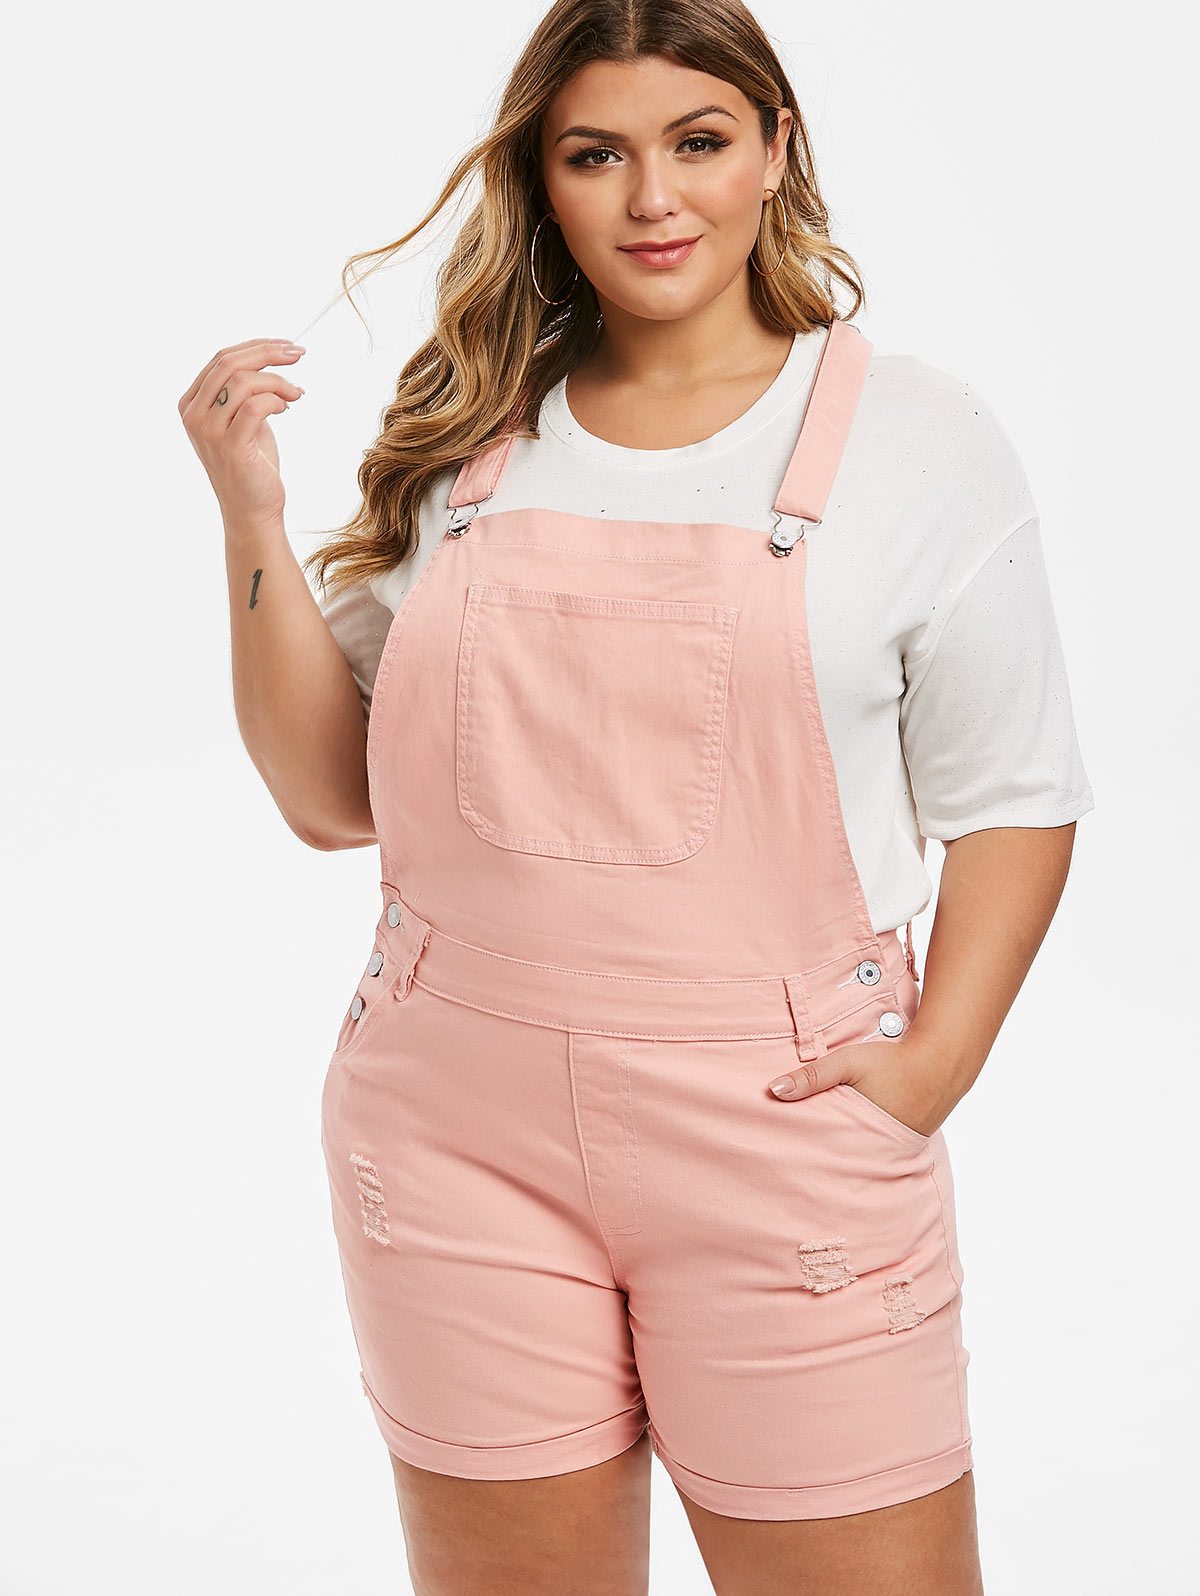 Rosegal 5XL Summer Women'S Denim Playsuits Pockets Ripped Pant Cuffed Distressed Jumpsuits Plus Size Denim Overall Shorts Romper